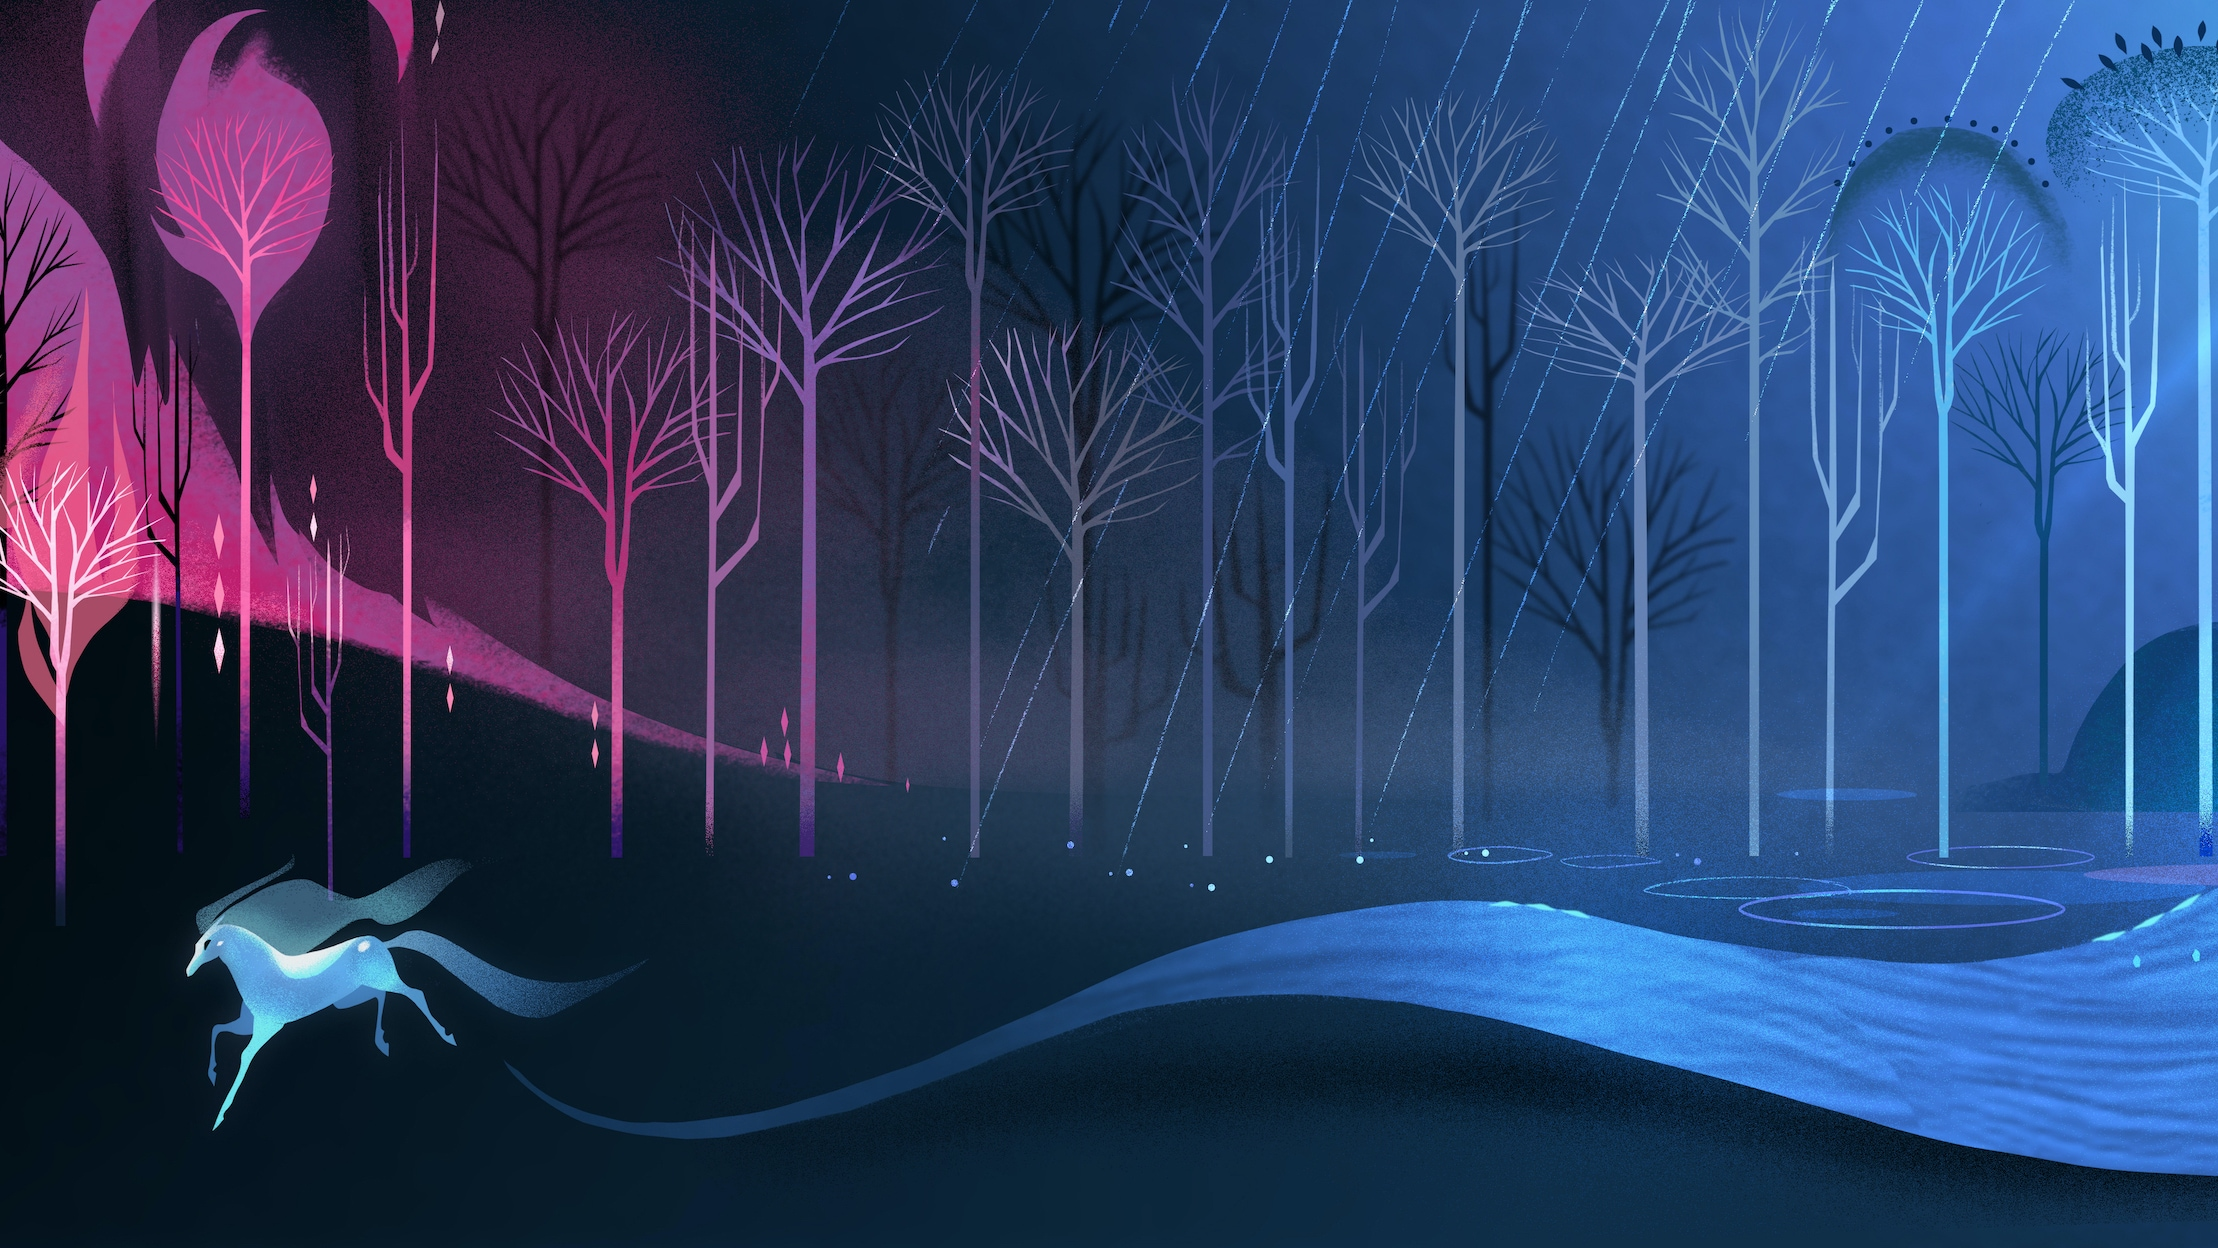 MYTH: A FROZEN TALE - In a forest outside of Arendelle, a family sits down for a bedtime story and is transported to a mystical and enchanted forest where the elemental spirits come to life and the myth of their past and future is revealed. ©2021 Disney. All Rights Reserved.